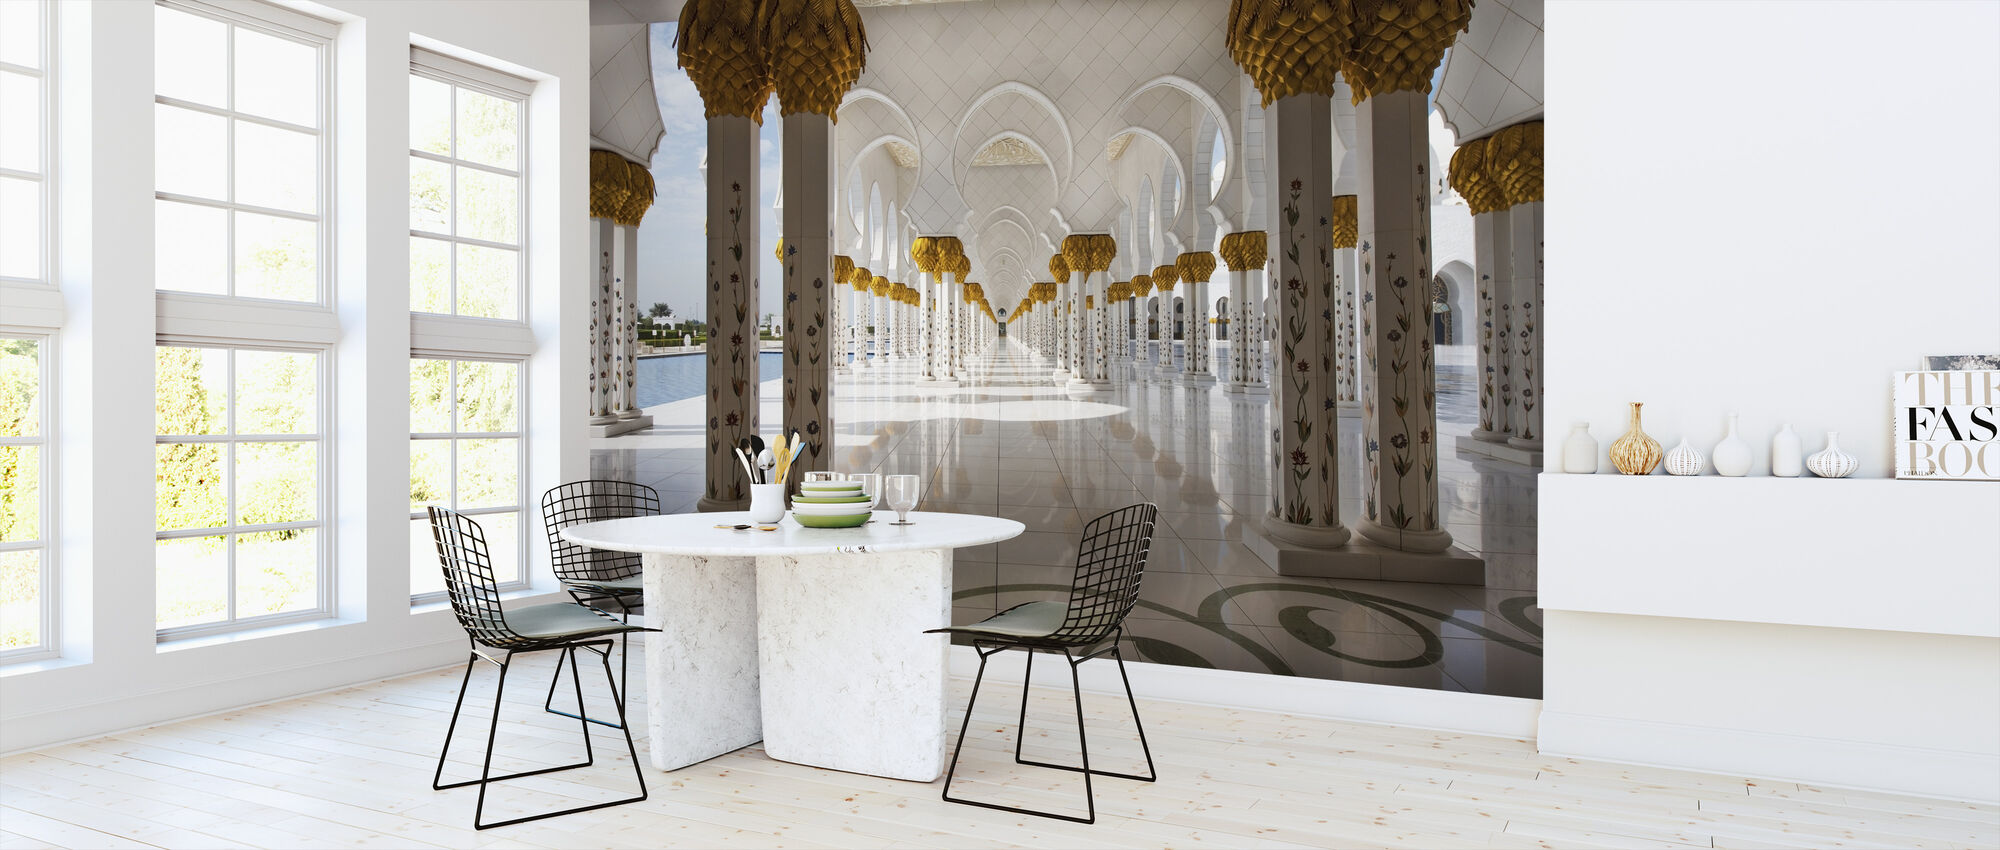 Abu Dhabi Mosque - Wallpaper - Kitchen